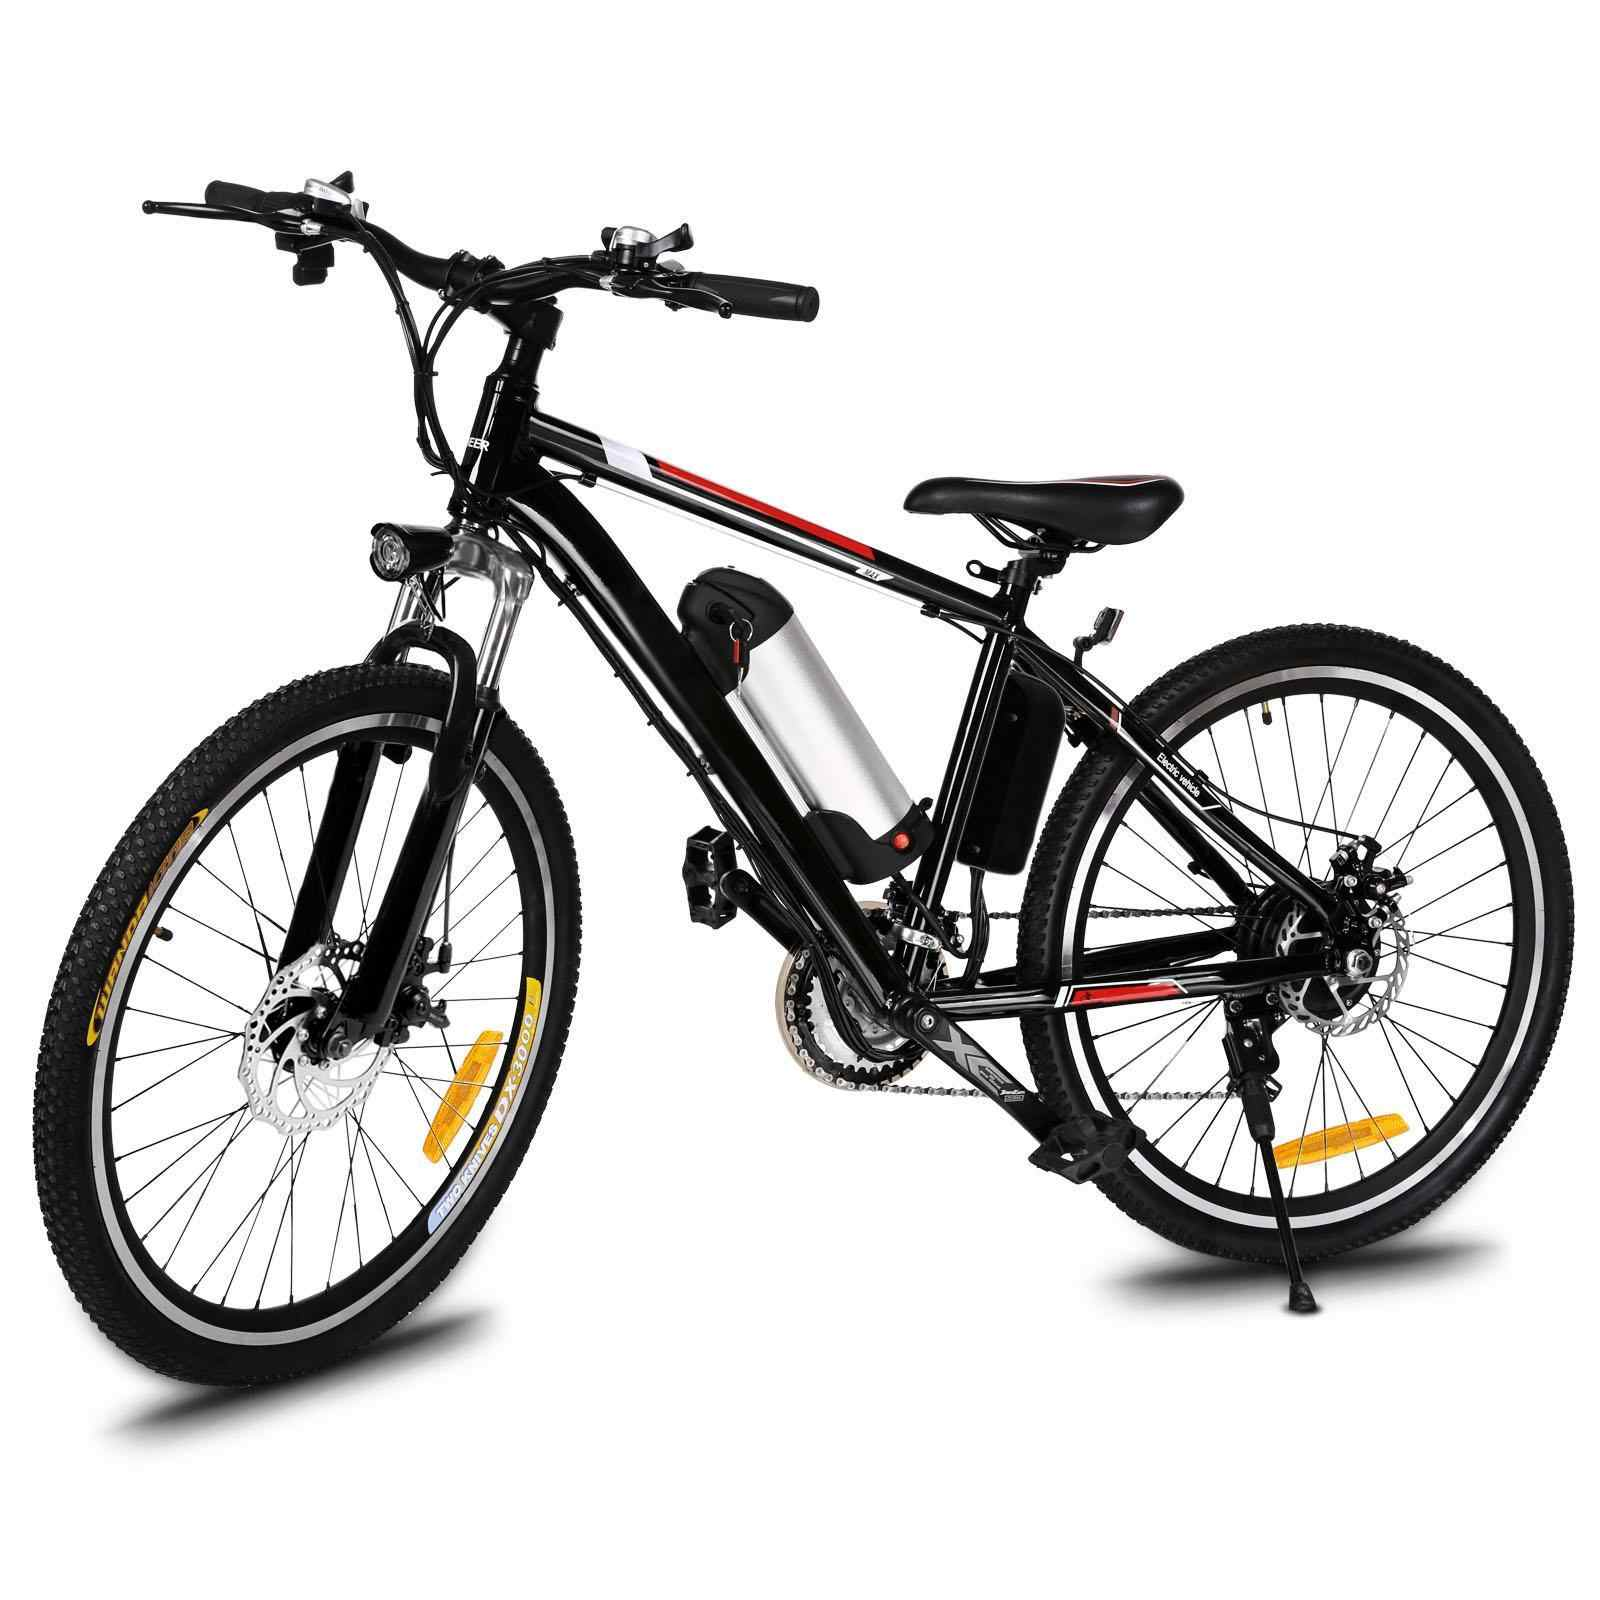 Powerful Electric Bike 26 Inch 250W EBike 21 Speed Electric Car City Road Electric Mountain Bicycle Bicicleta For Men US Plug